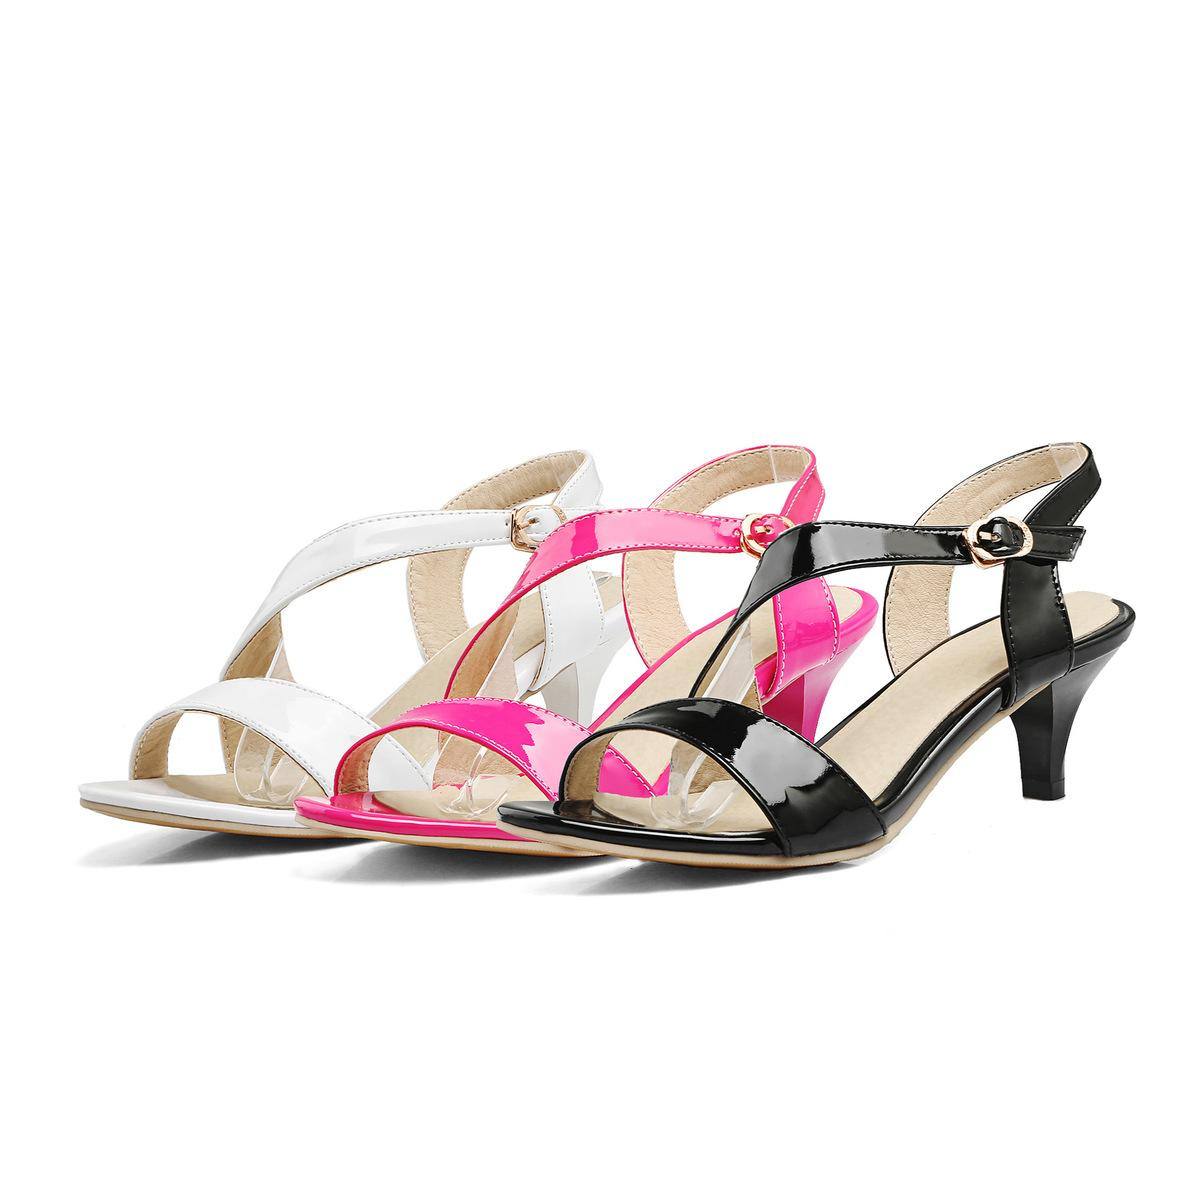 30 womens images pink sandals pictures